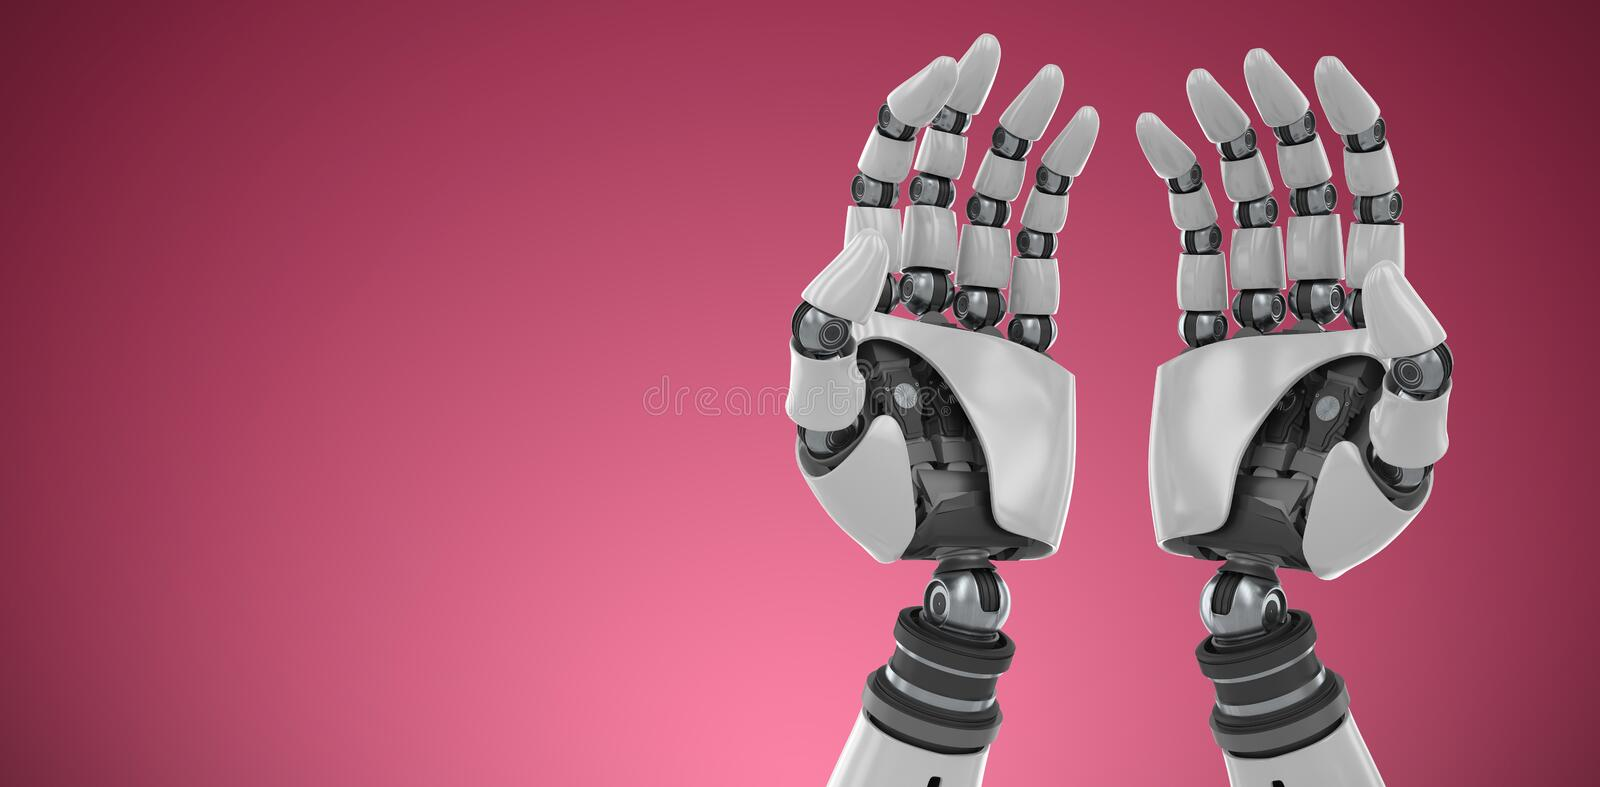 Composite image of composite image of robotic hands against white backgroun. Composite image of robotic hands against white backgroun against red and white royalty free illustration